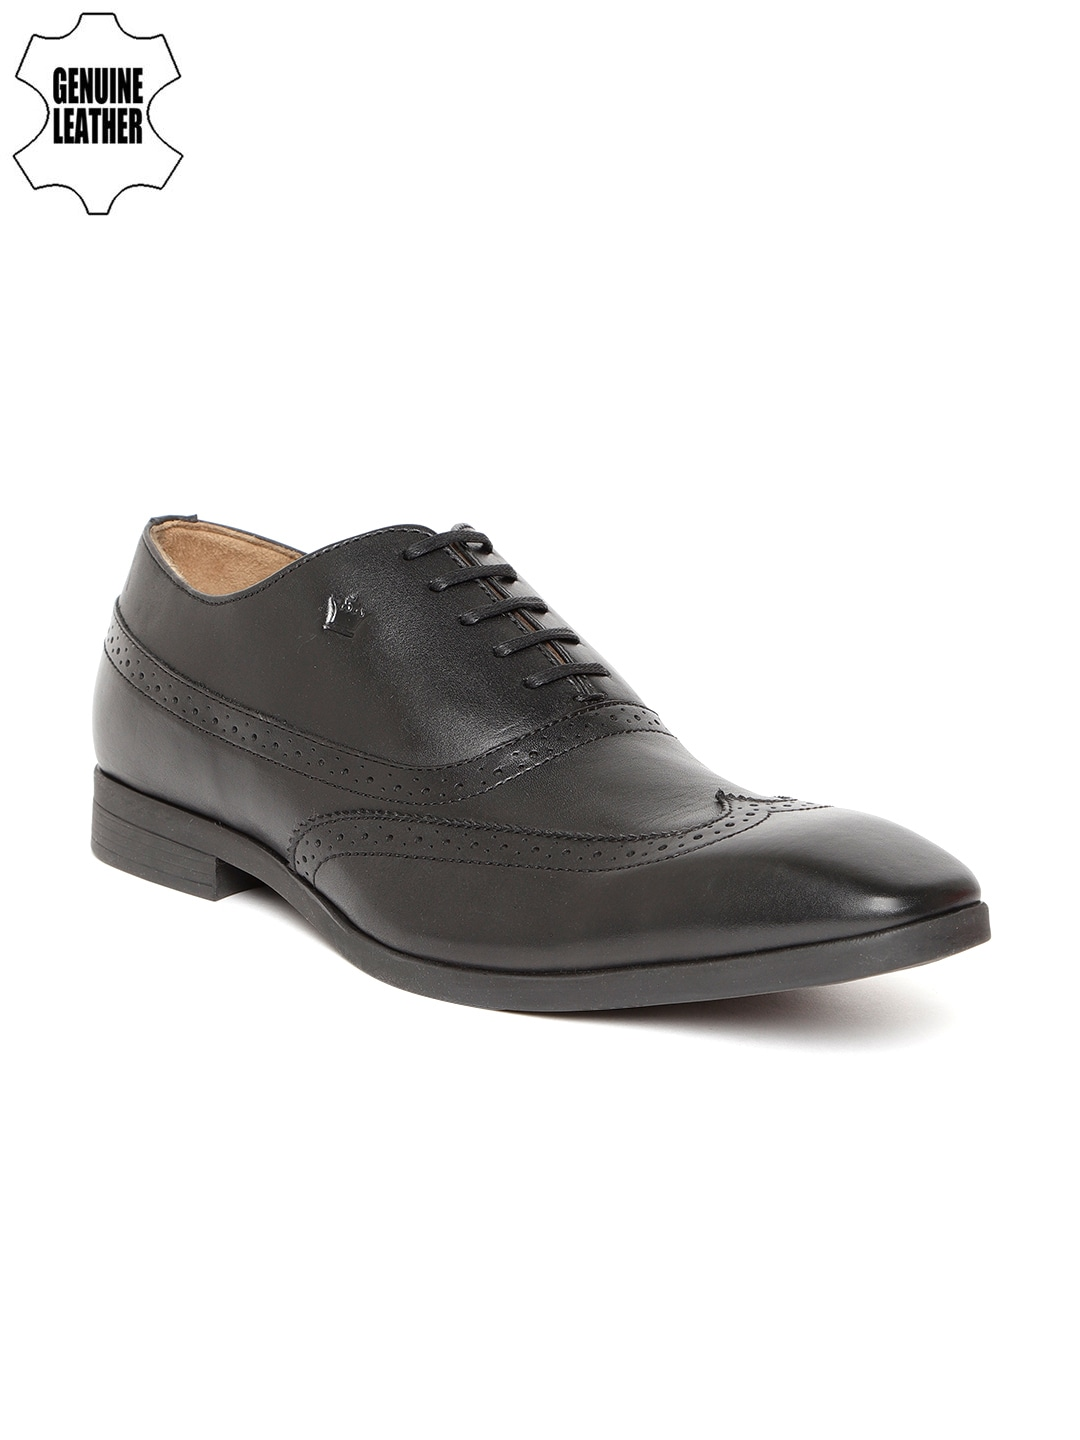 55ecaf4ac Louis Philippe Shoes - Buy Louis Philippe Shoes Online